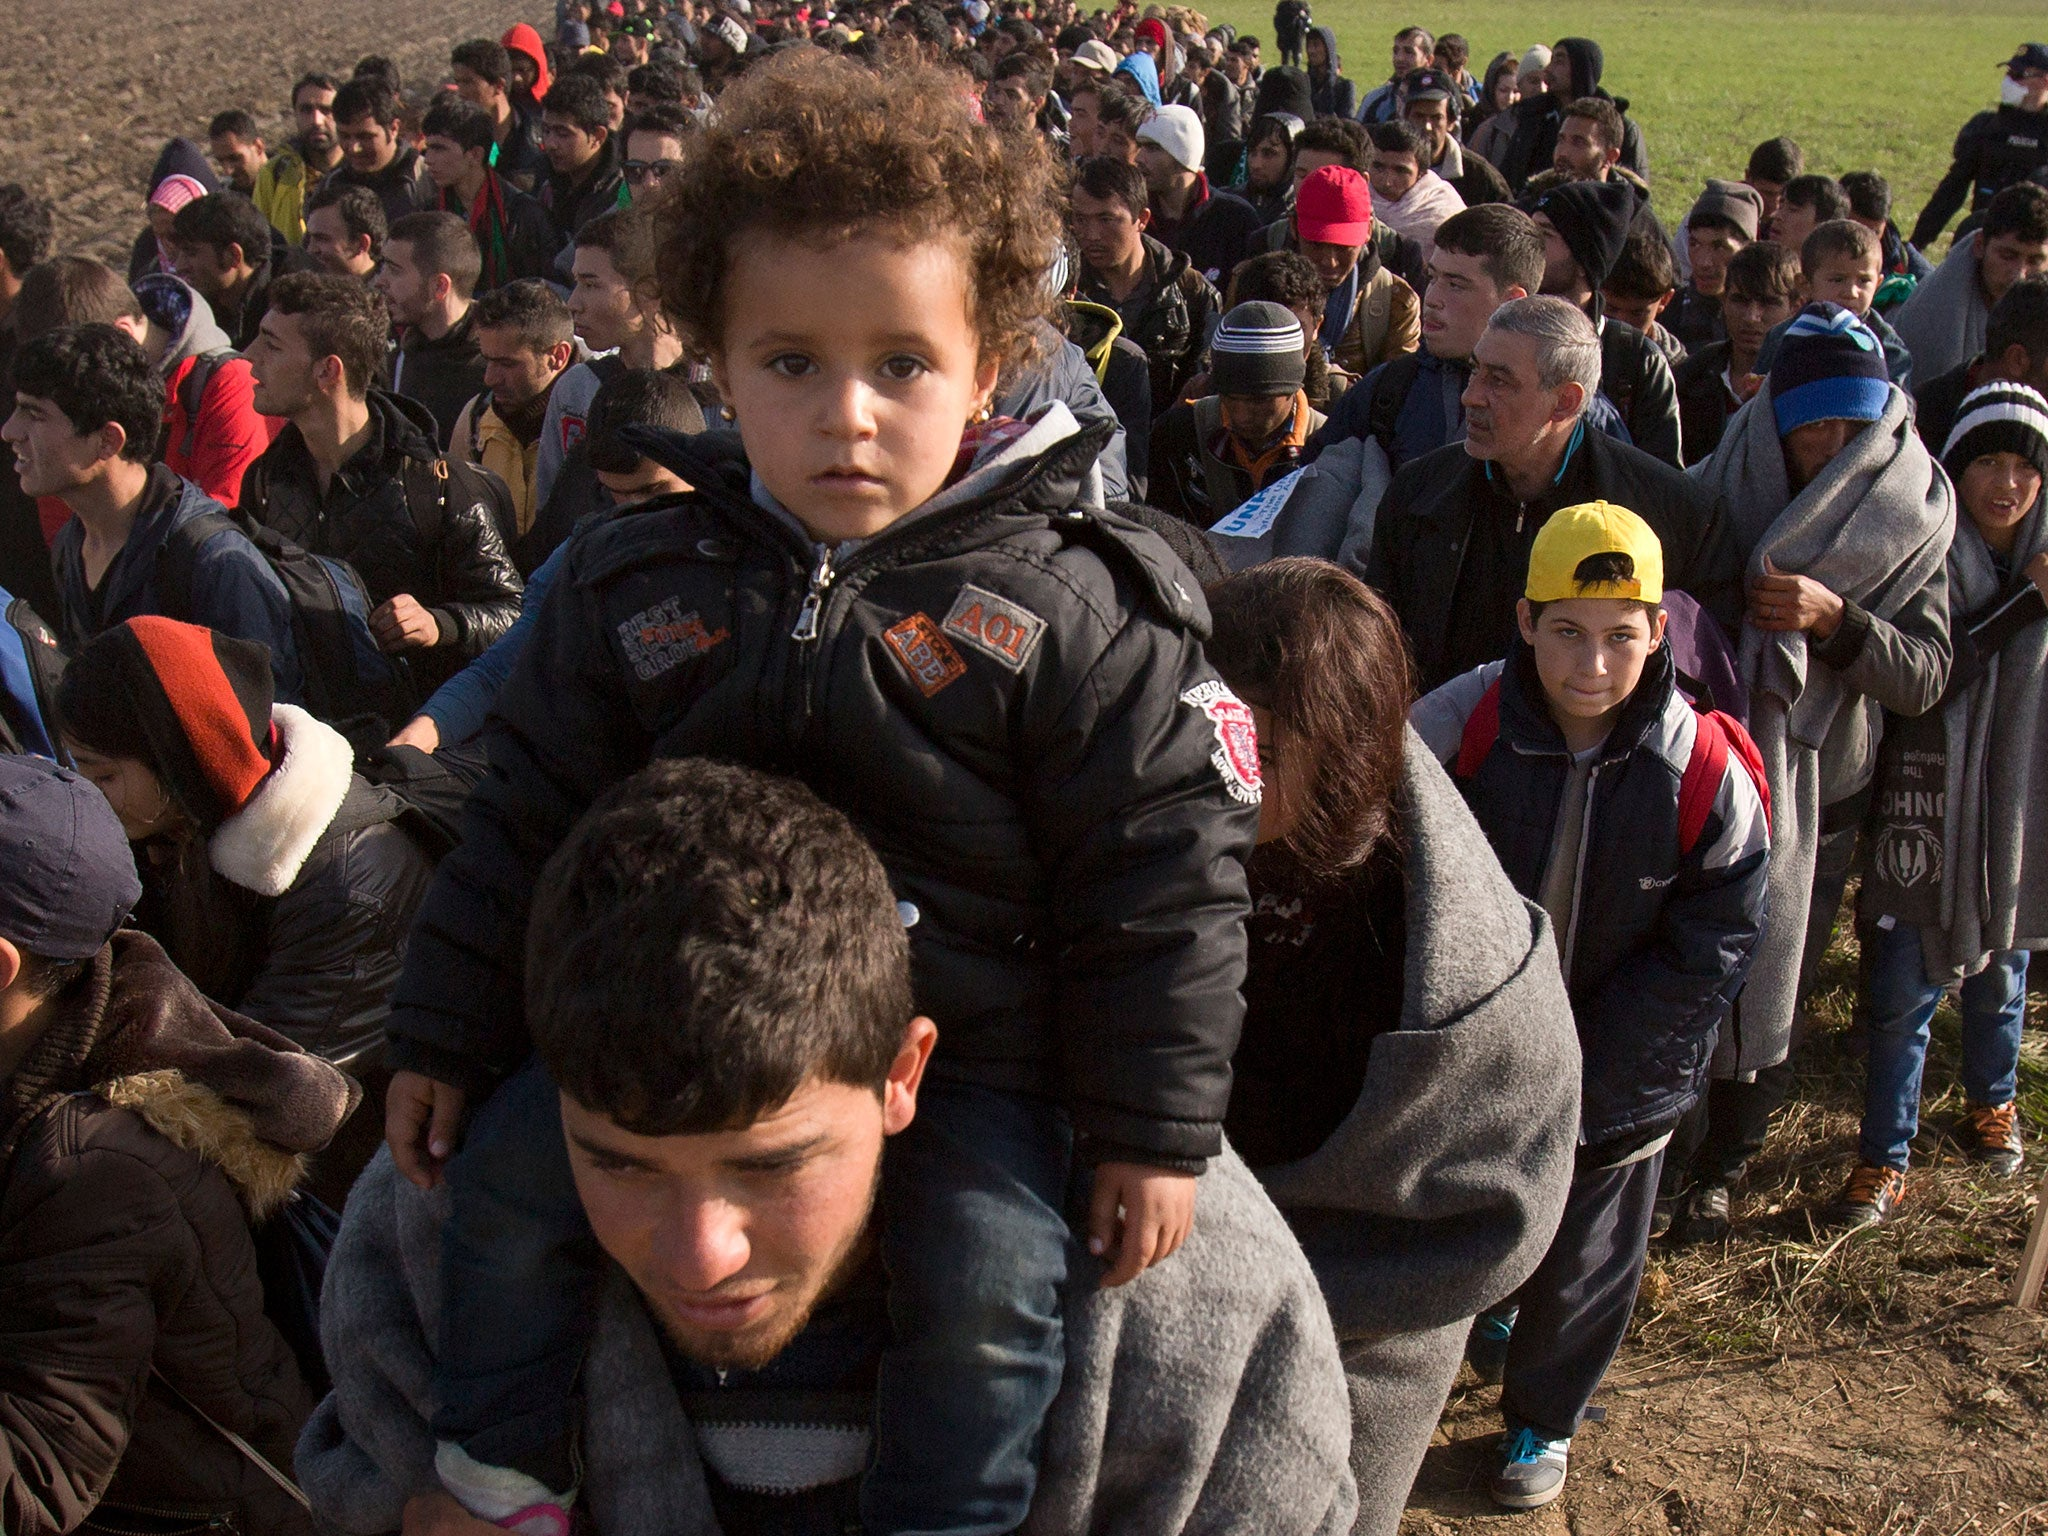 The refugee crisis is actually having 'sizable' economic benefits in